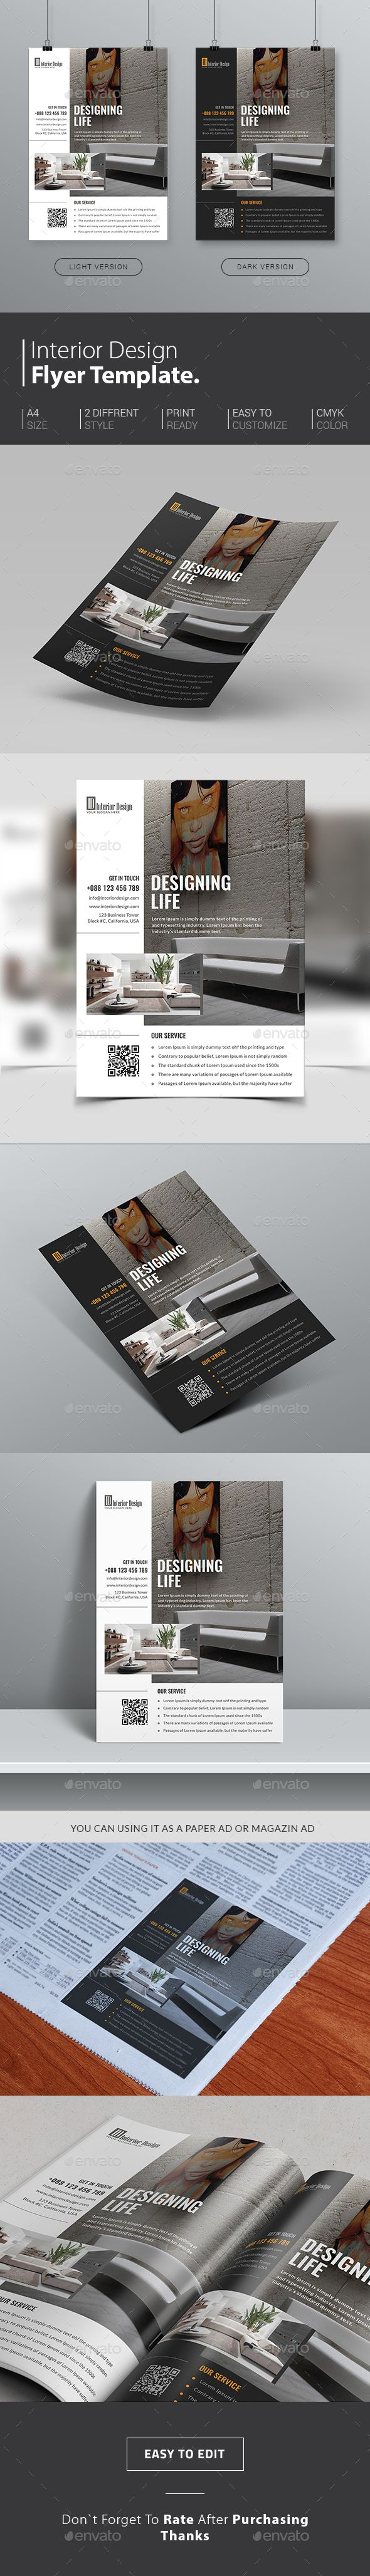 Interior Design Flyer Template, suitable for #realestate #interiordesign promotion. http://graphicriver.net/item/interior-design-flyer/14926847?ref=themedevisers